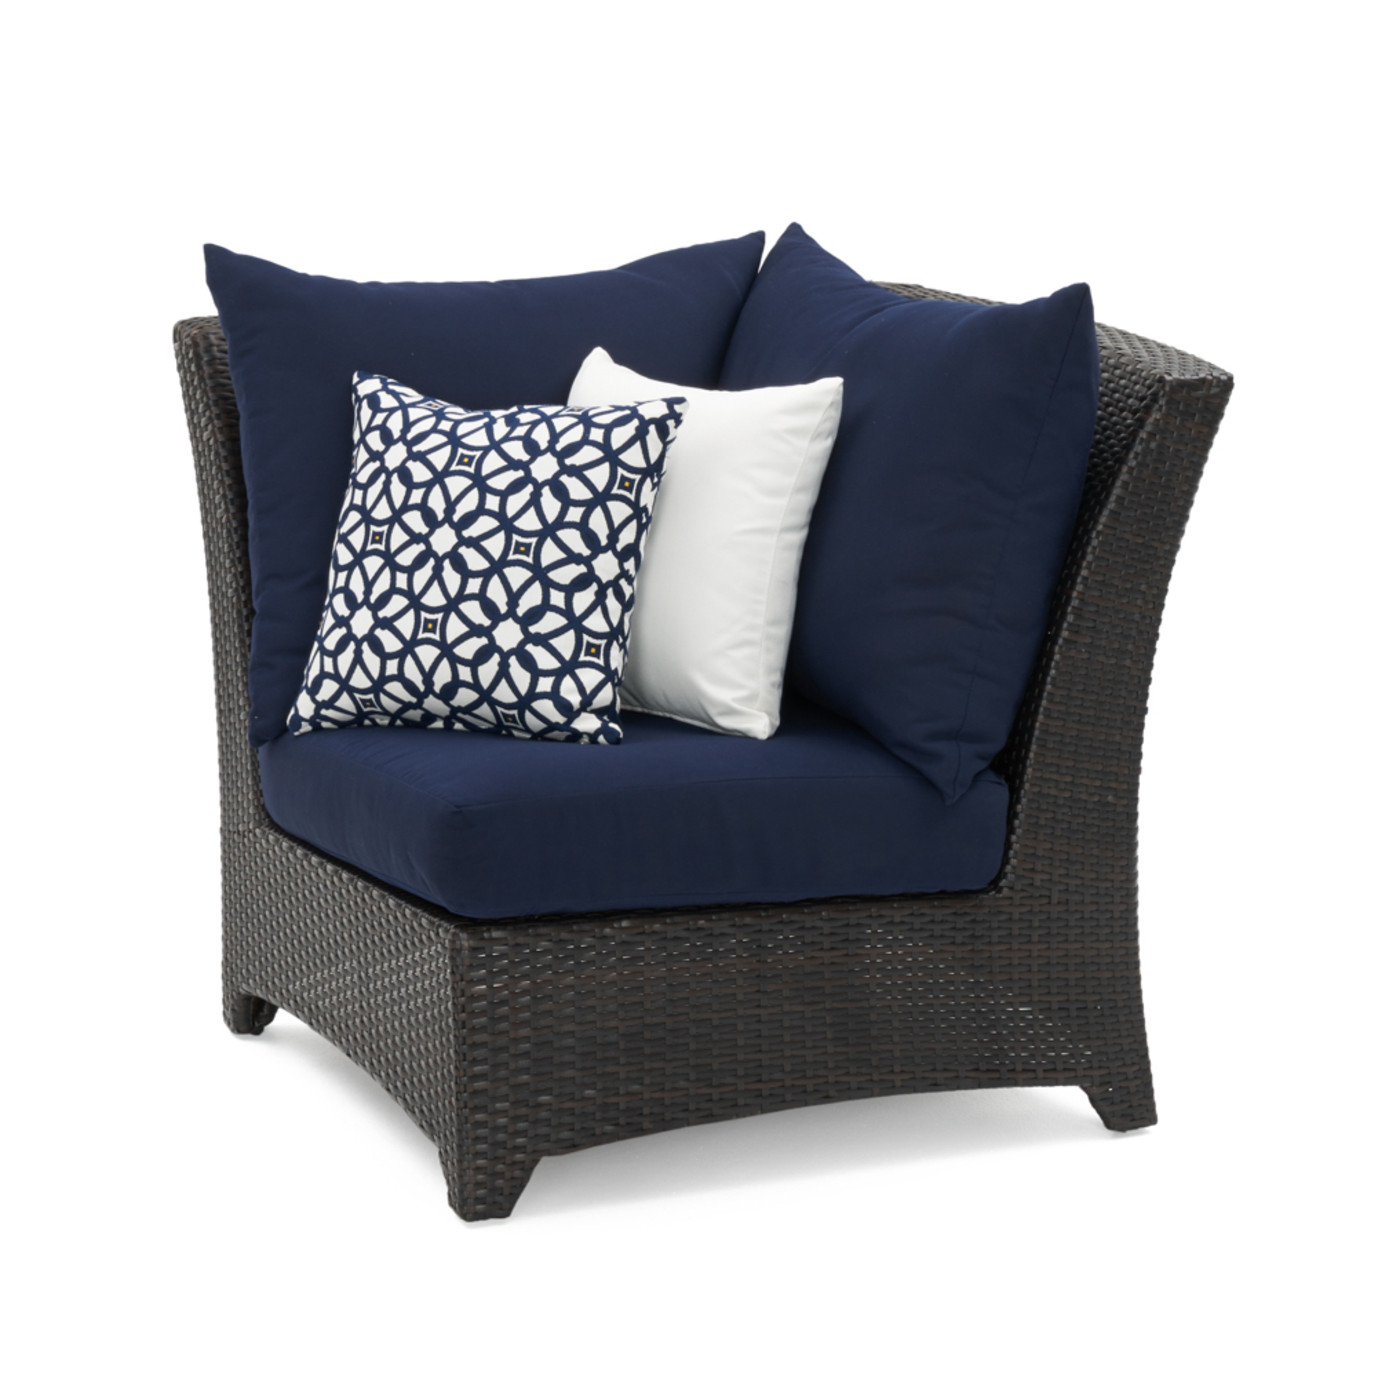 Deco™ Corner Chair - Navy Blue